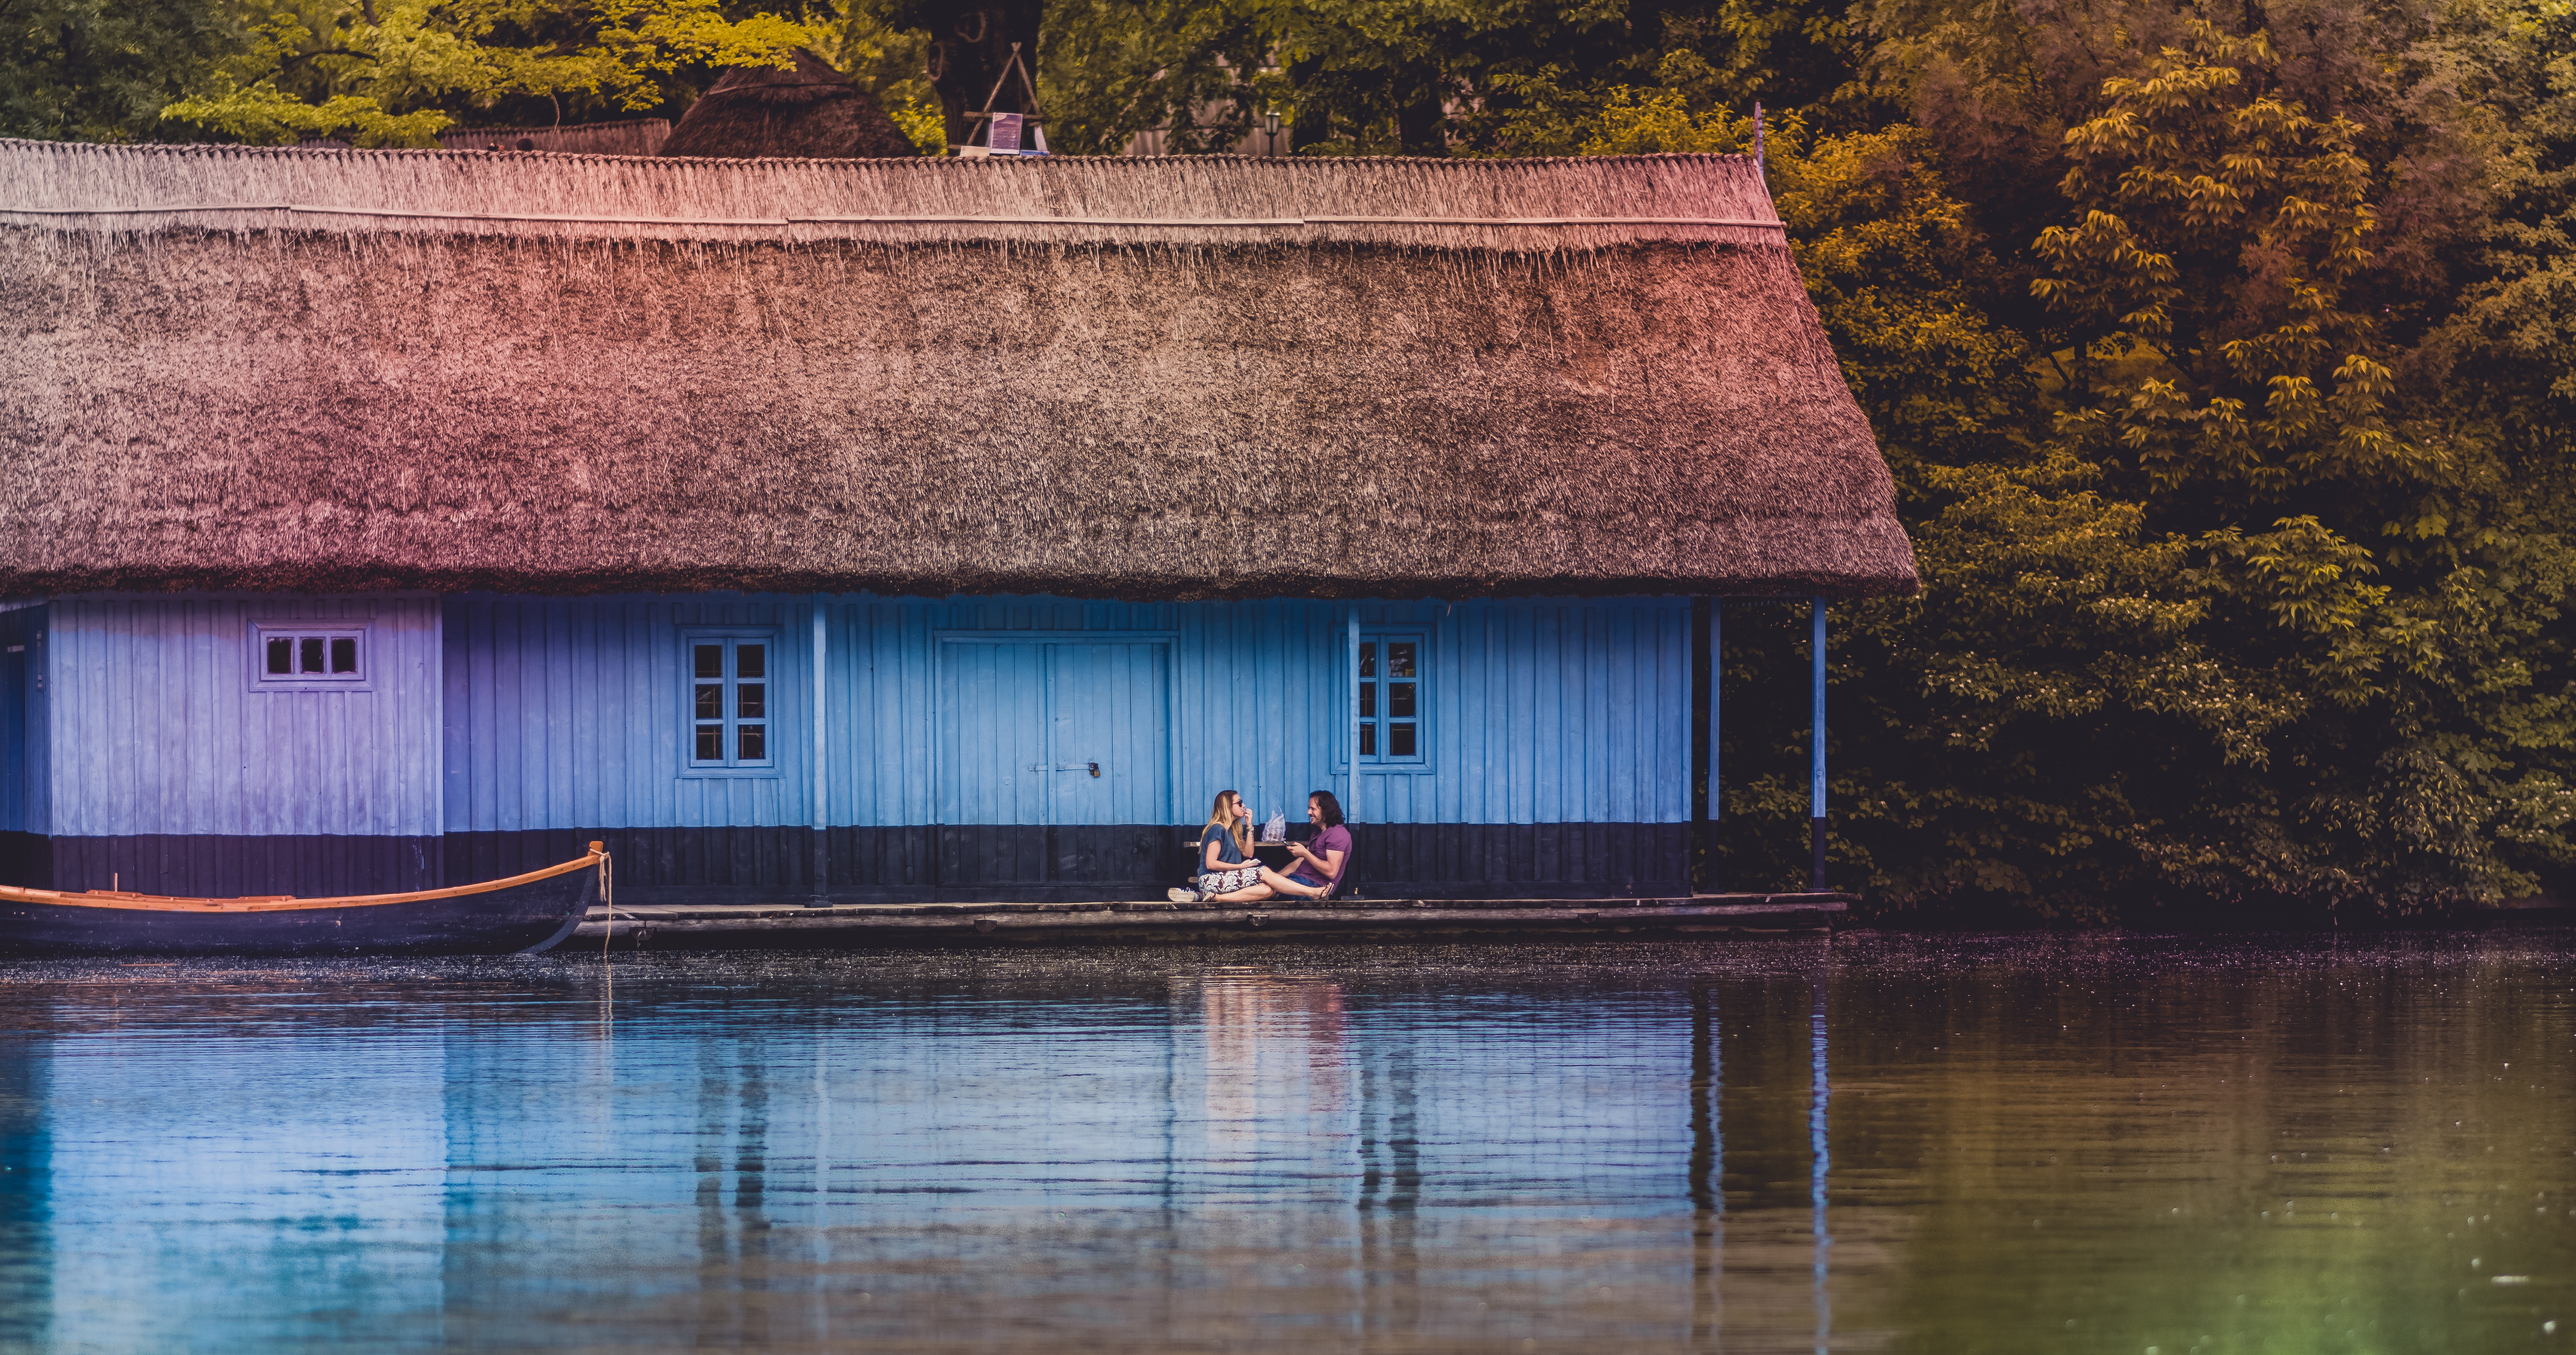 two person sitting on bench near body of water